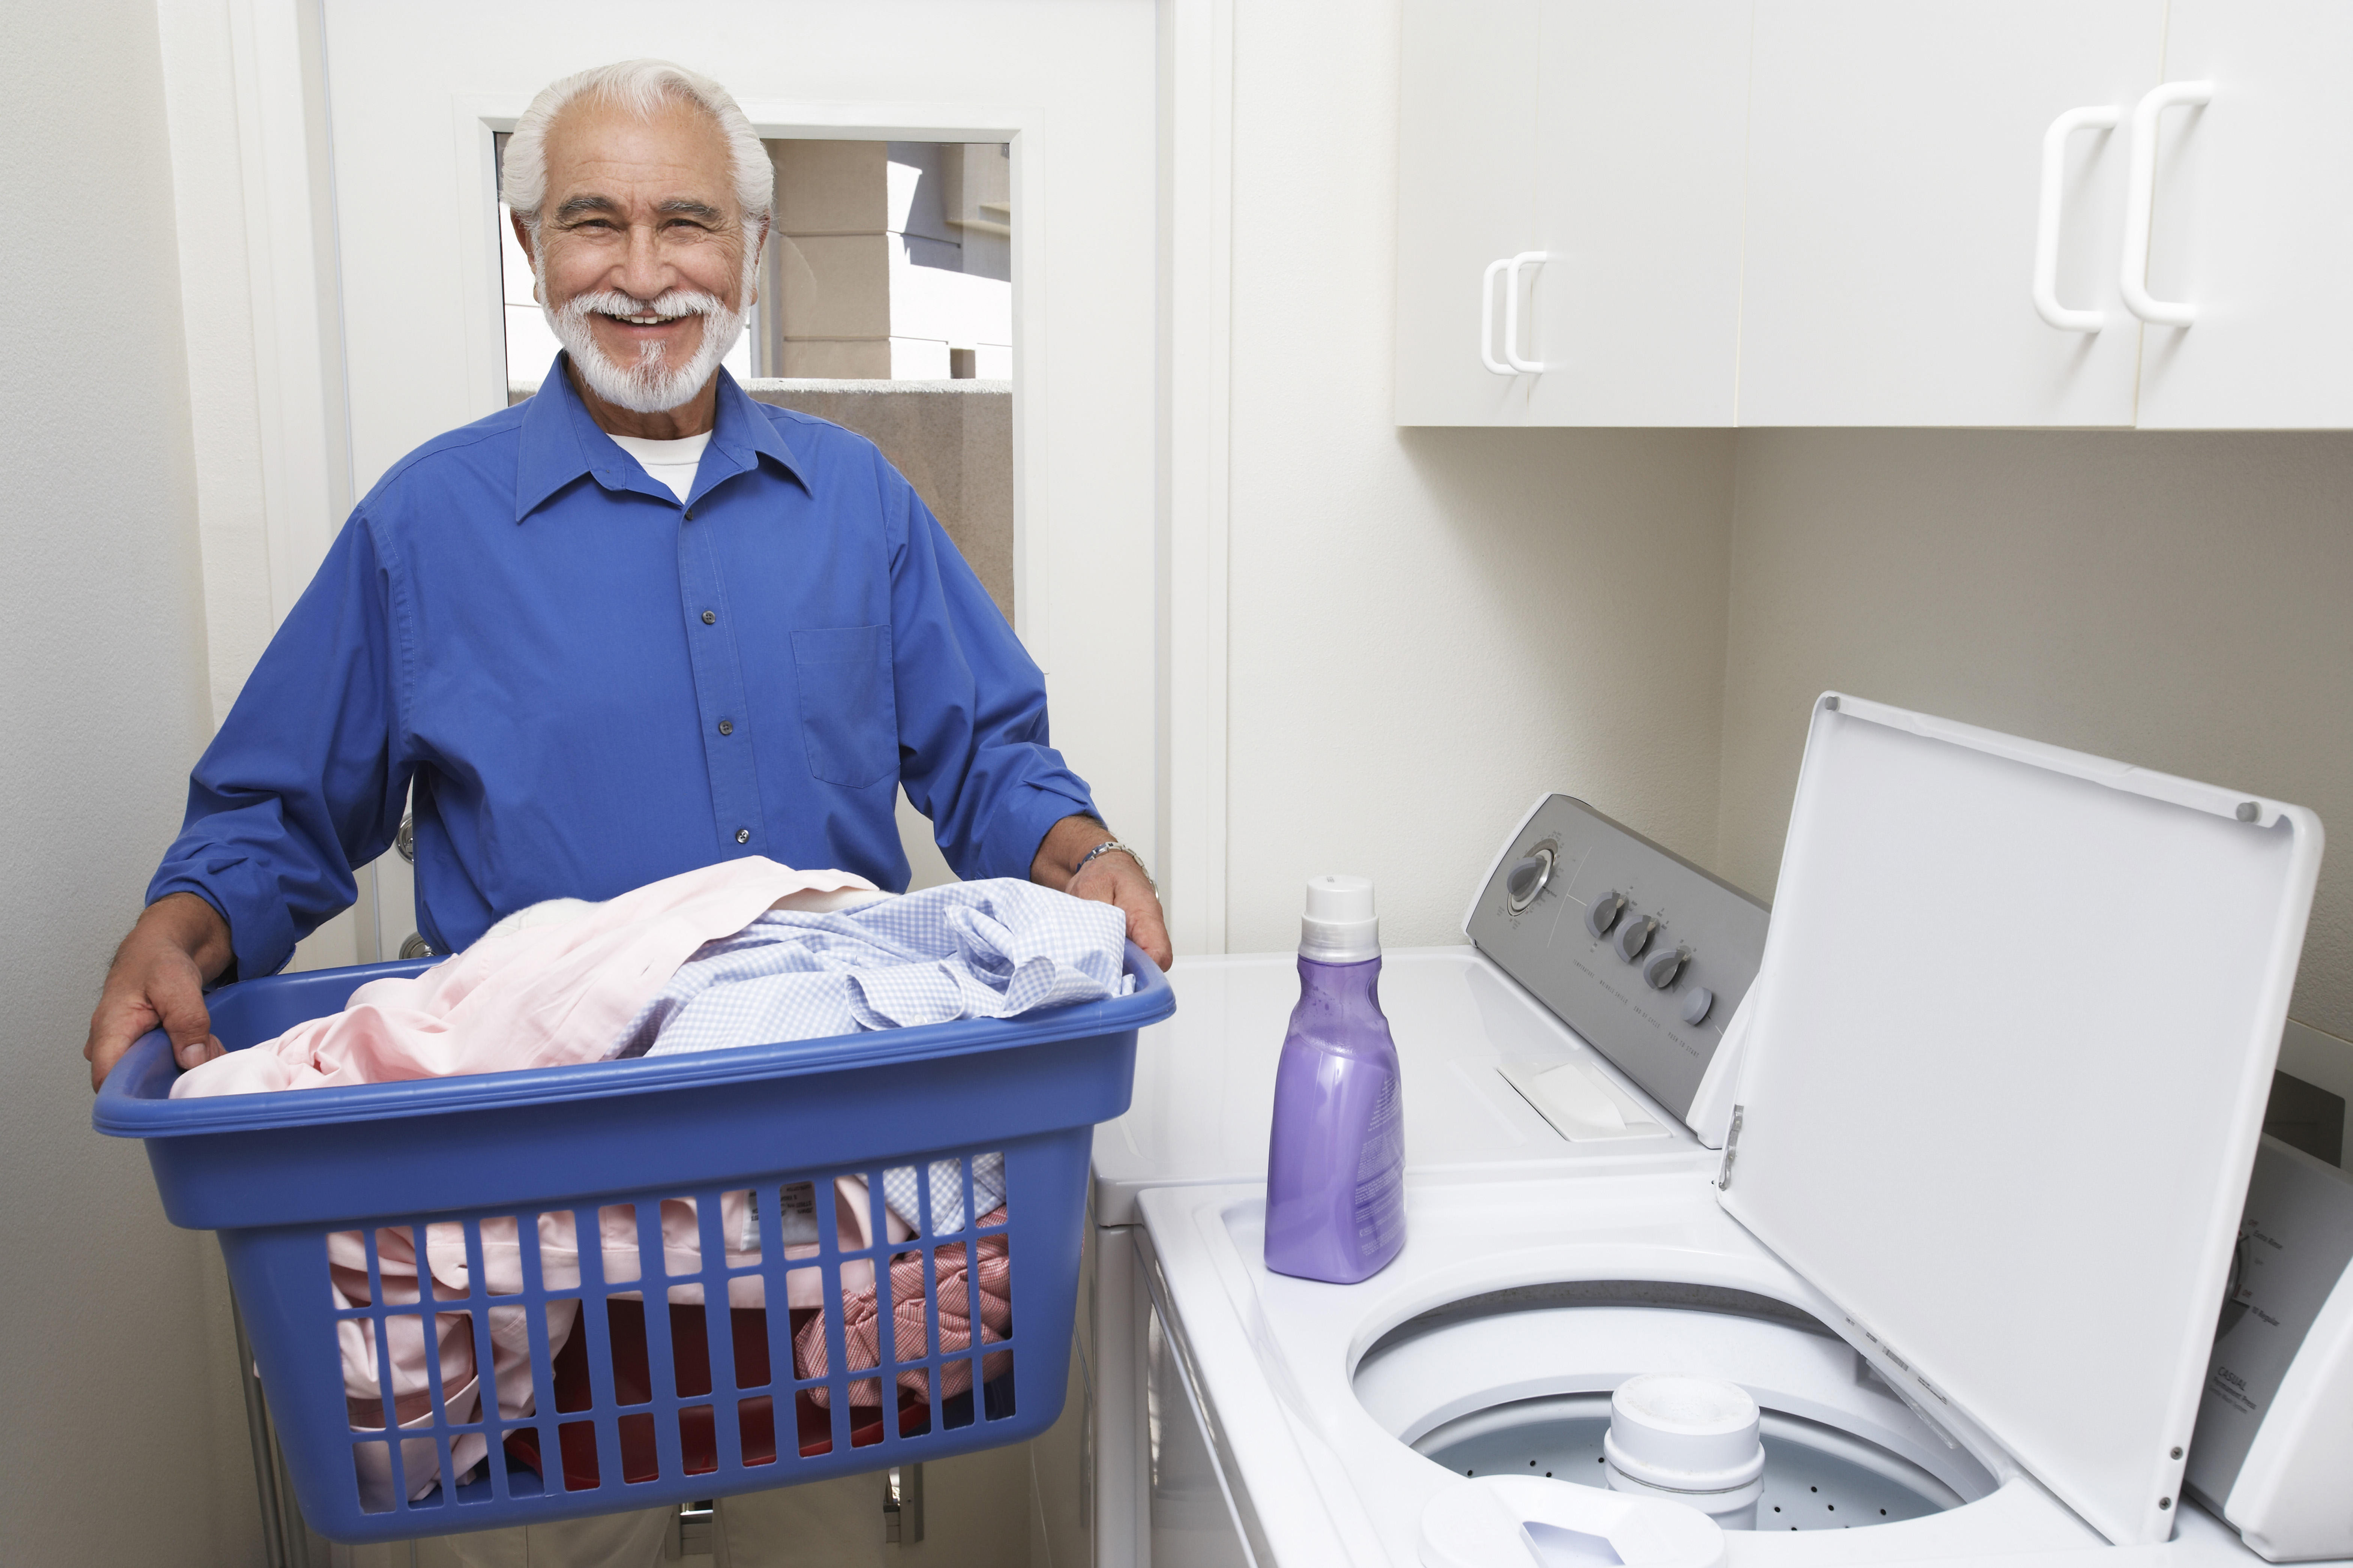 Adjusting the laundry settings to save on energy costs.